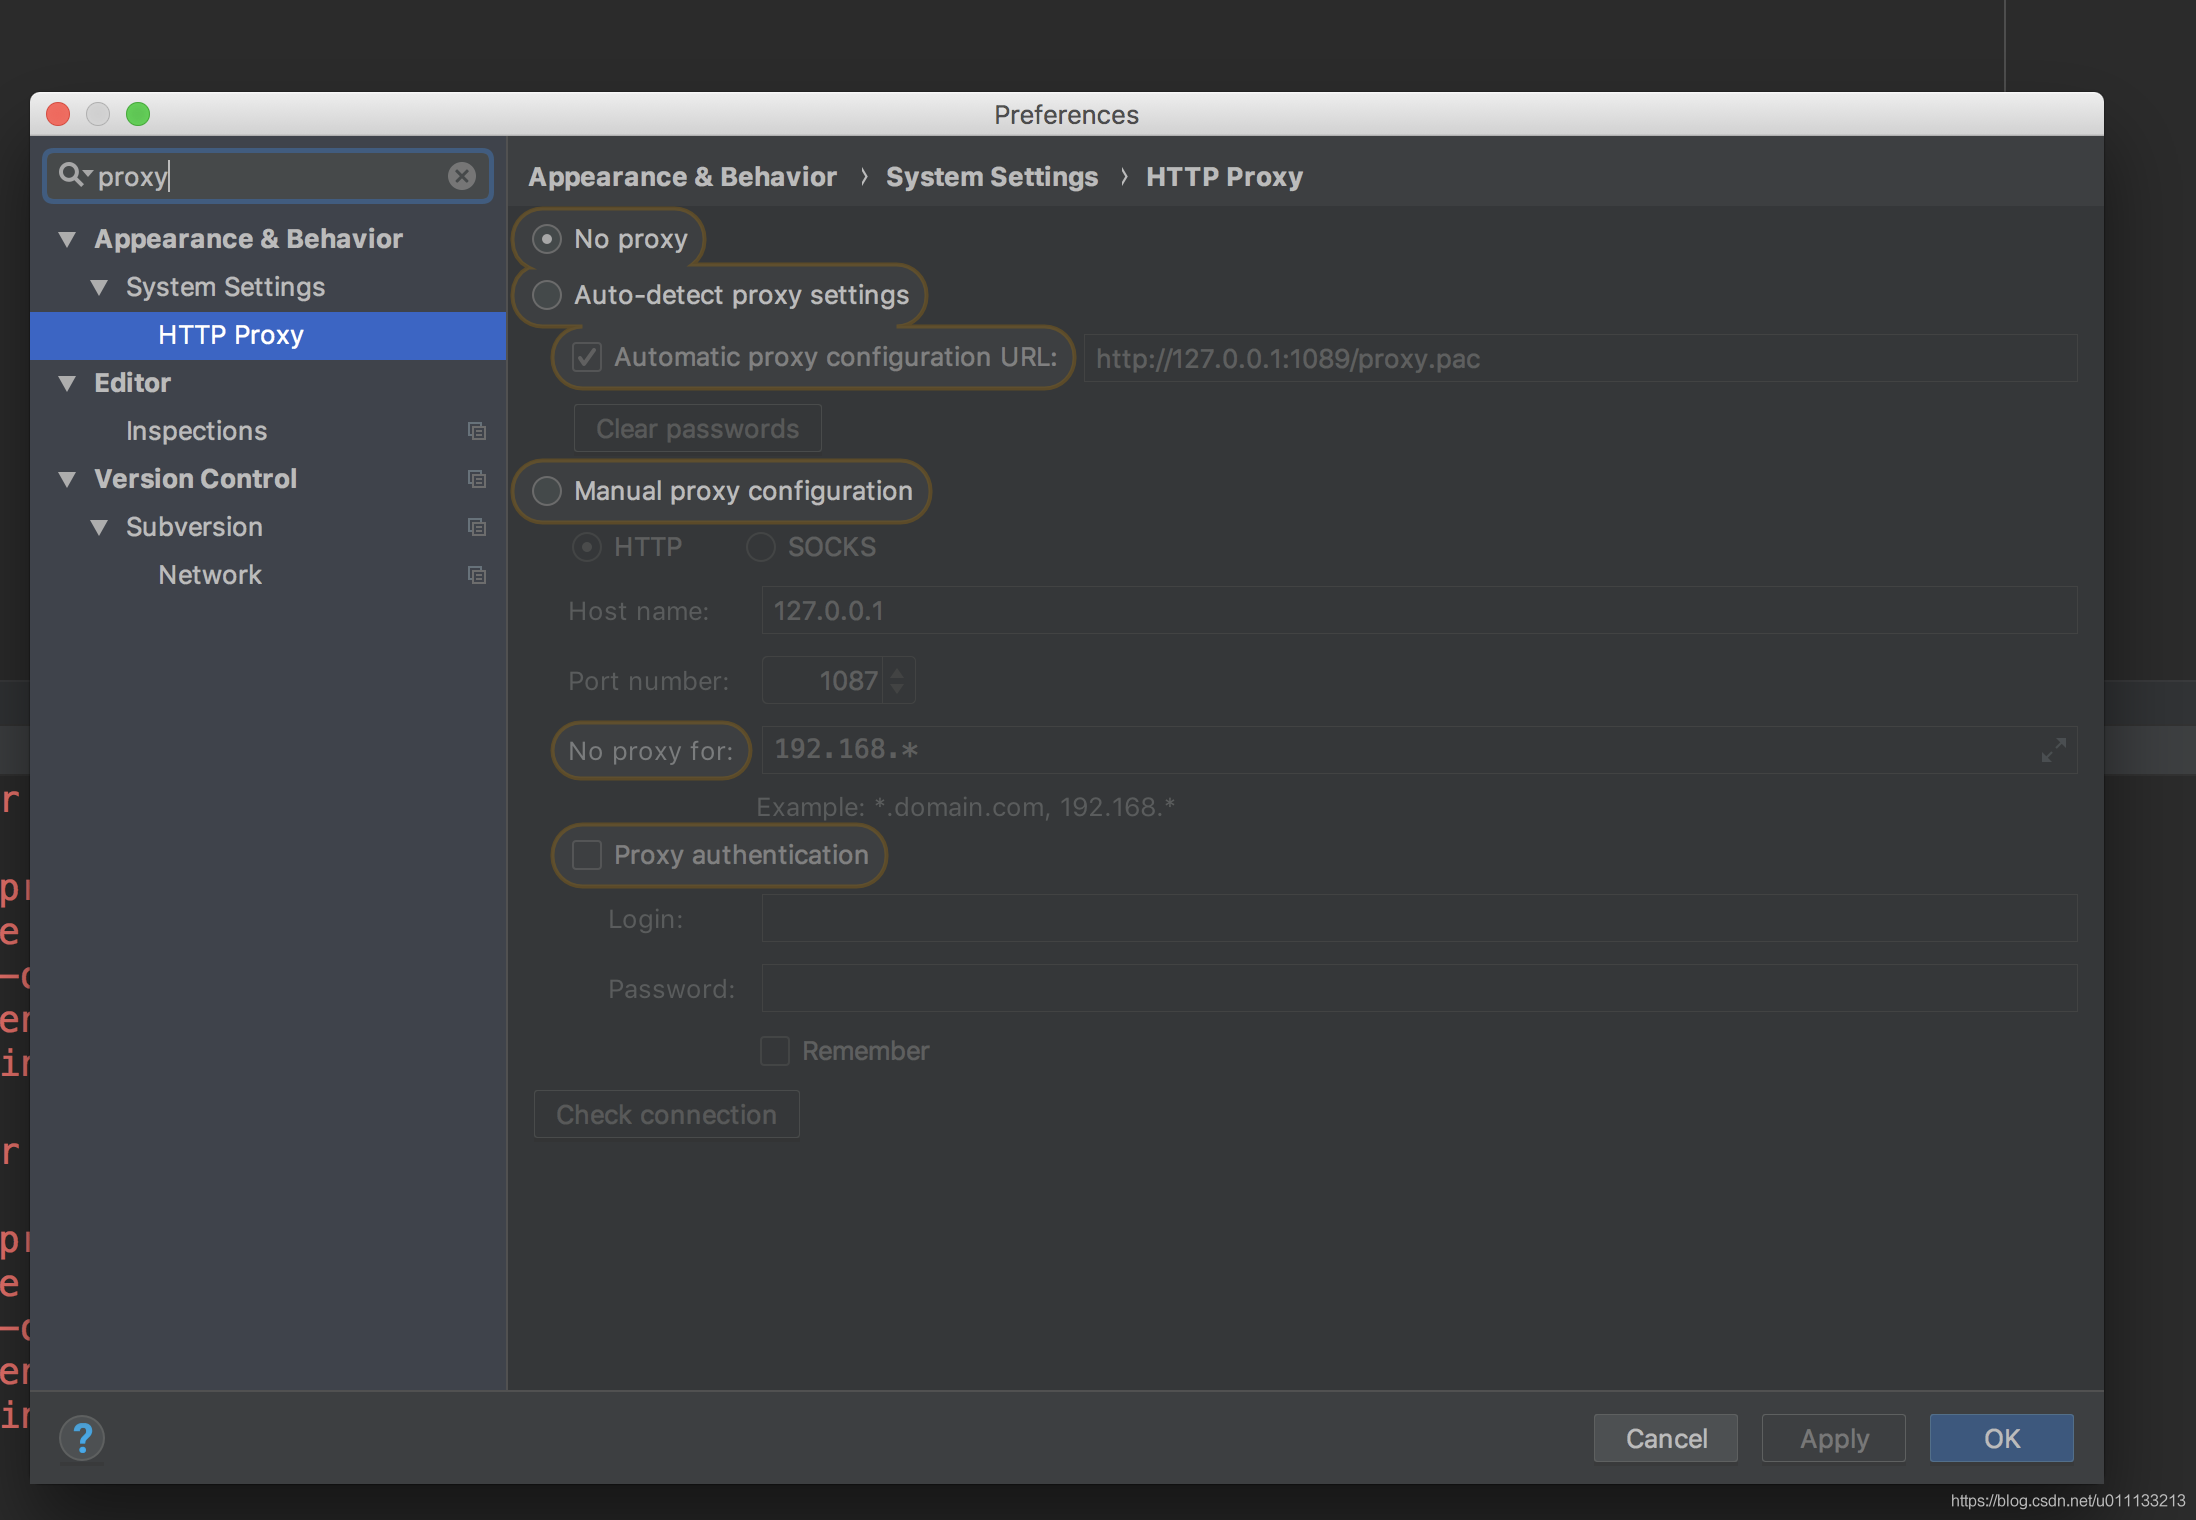 Android Studio Received status code 500 from server